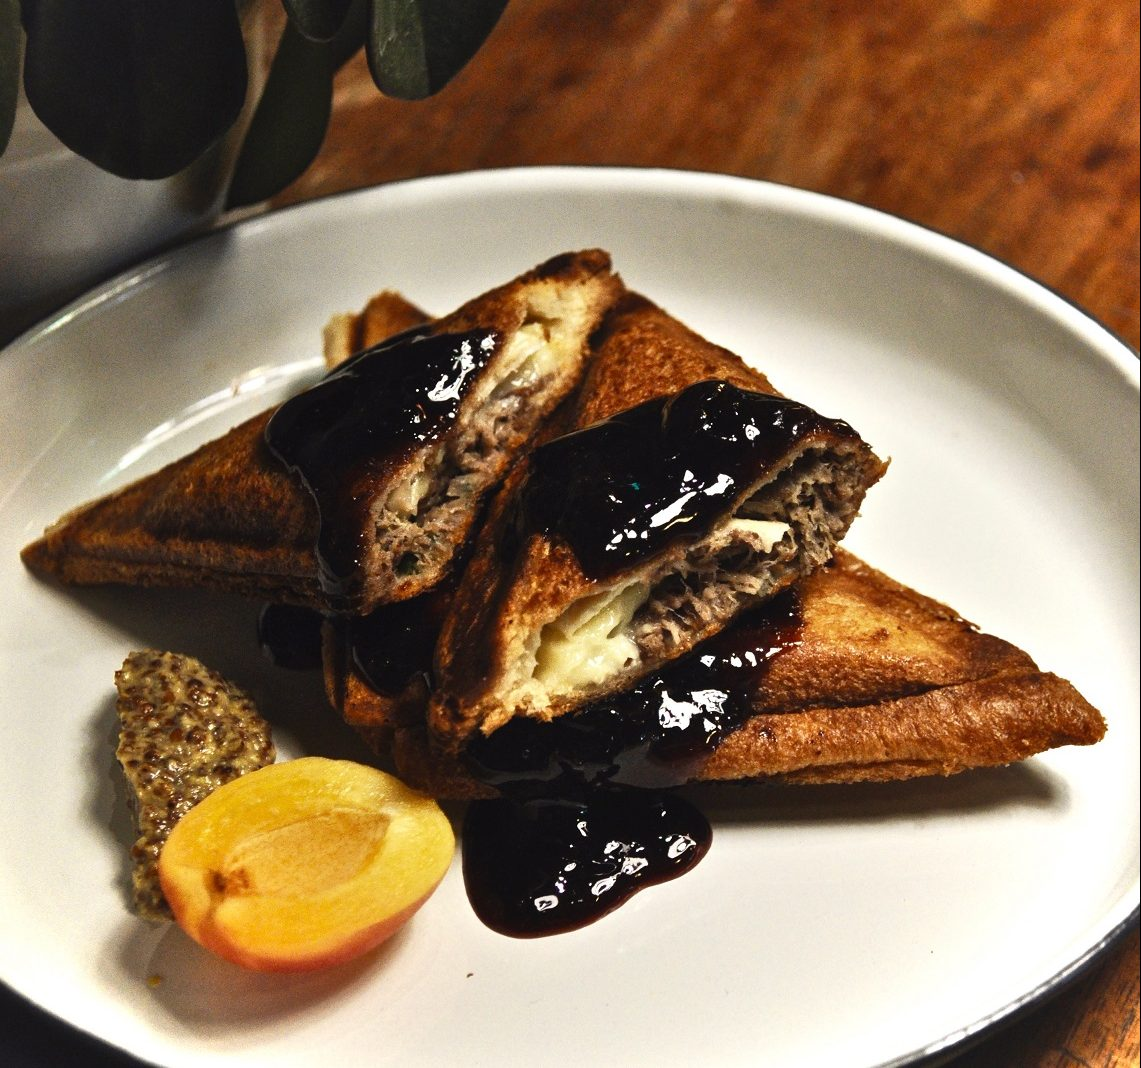 Toasties with duck rilette and brie. Served with wholegrain mustard and port-cherry compote